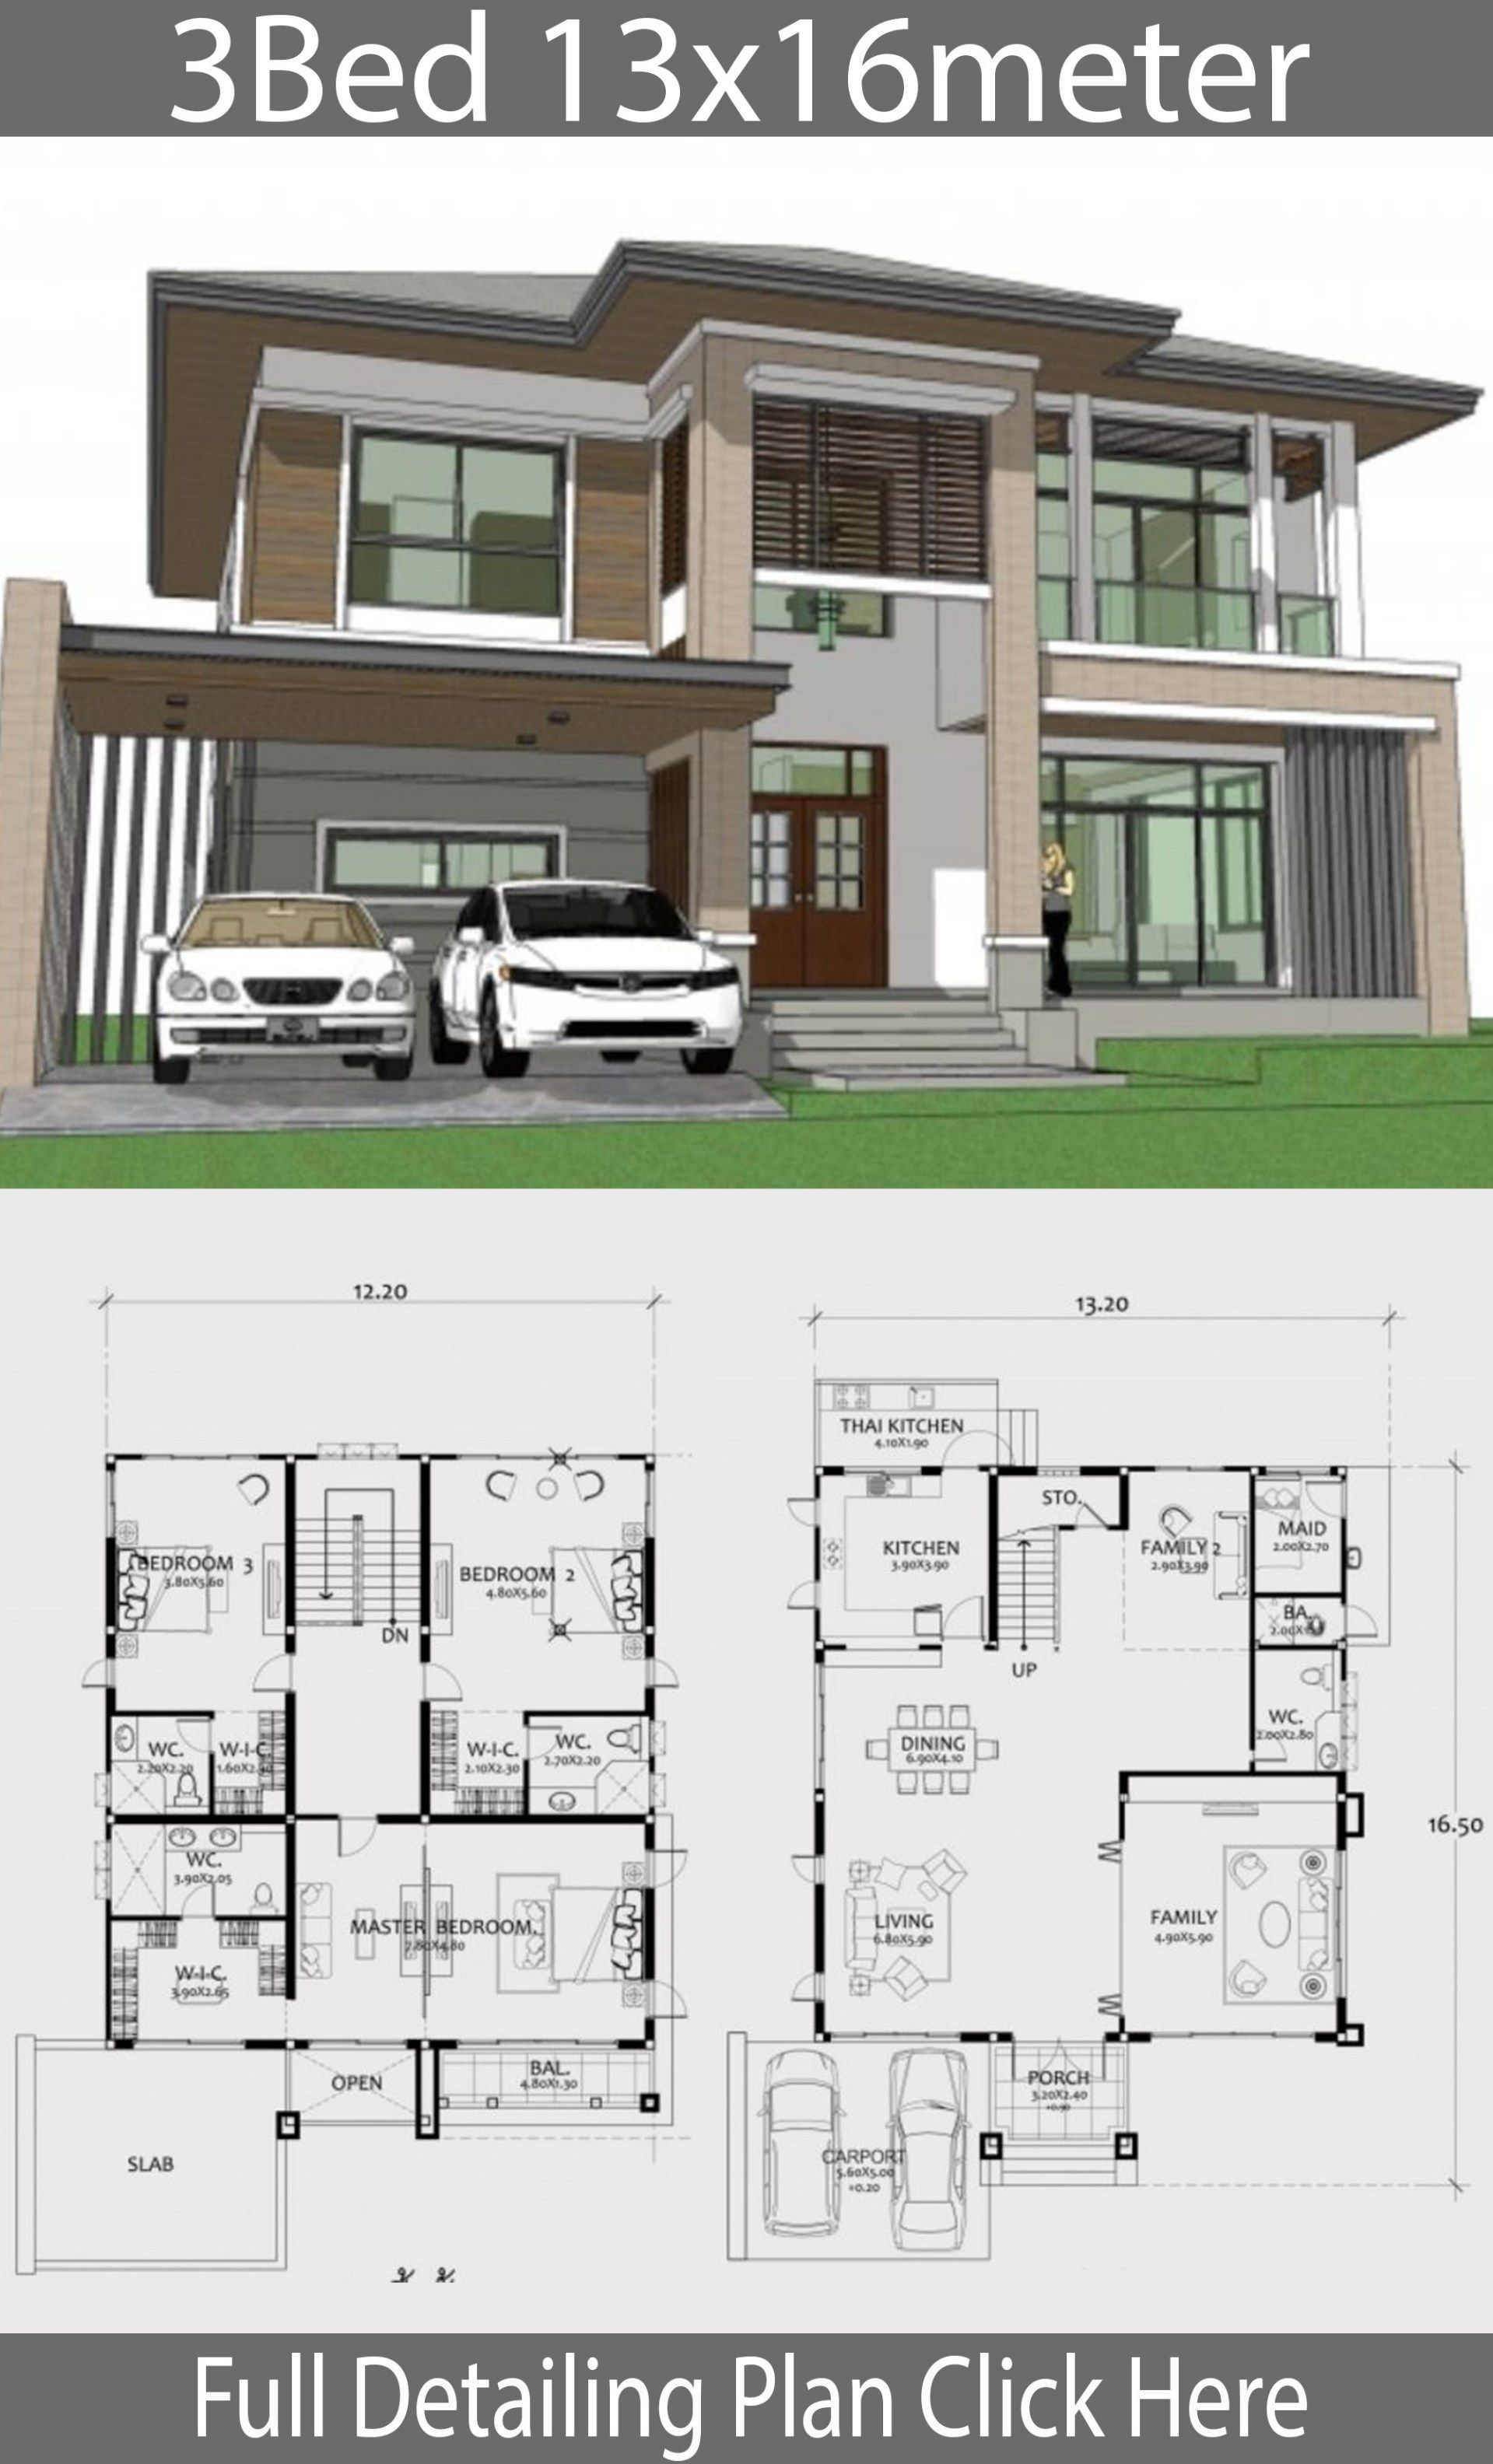 Home Design Plan 13x16m With 3 Bedrooms Home Ideas Architectural House Plans Model House Plan House Architecture Design